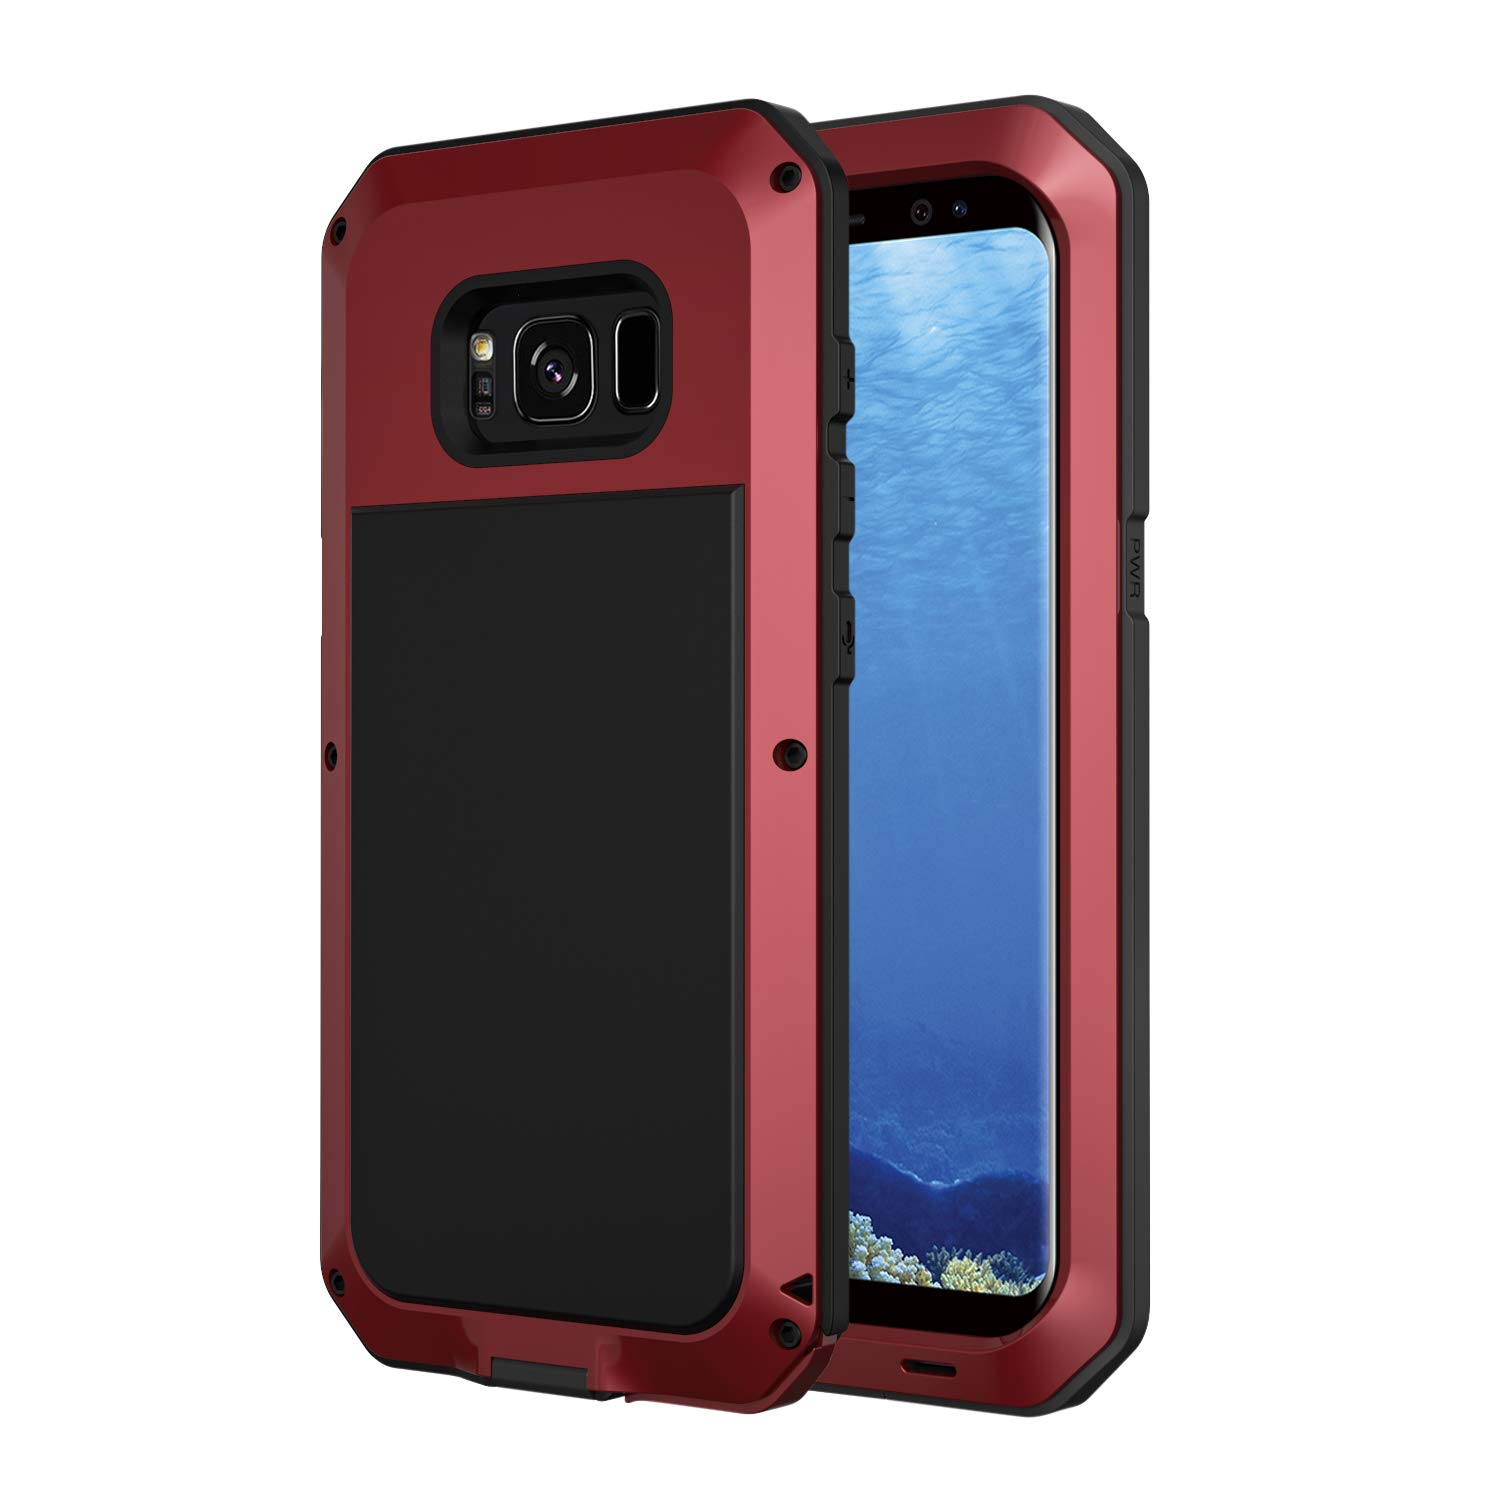 the best attitude ad0fc 3fa45 Galaxy S8 Plus Case, Seacosmo Military Rugged Heavy Duty Aluminum  Shockproof Dual Layer Bumper Cover for Samsung Galaxy S8+, Red